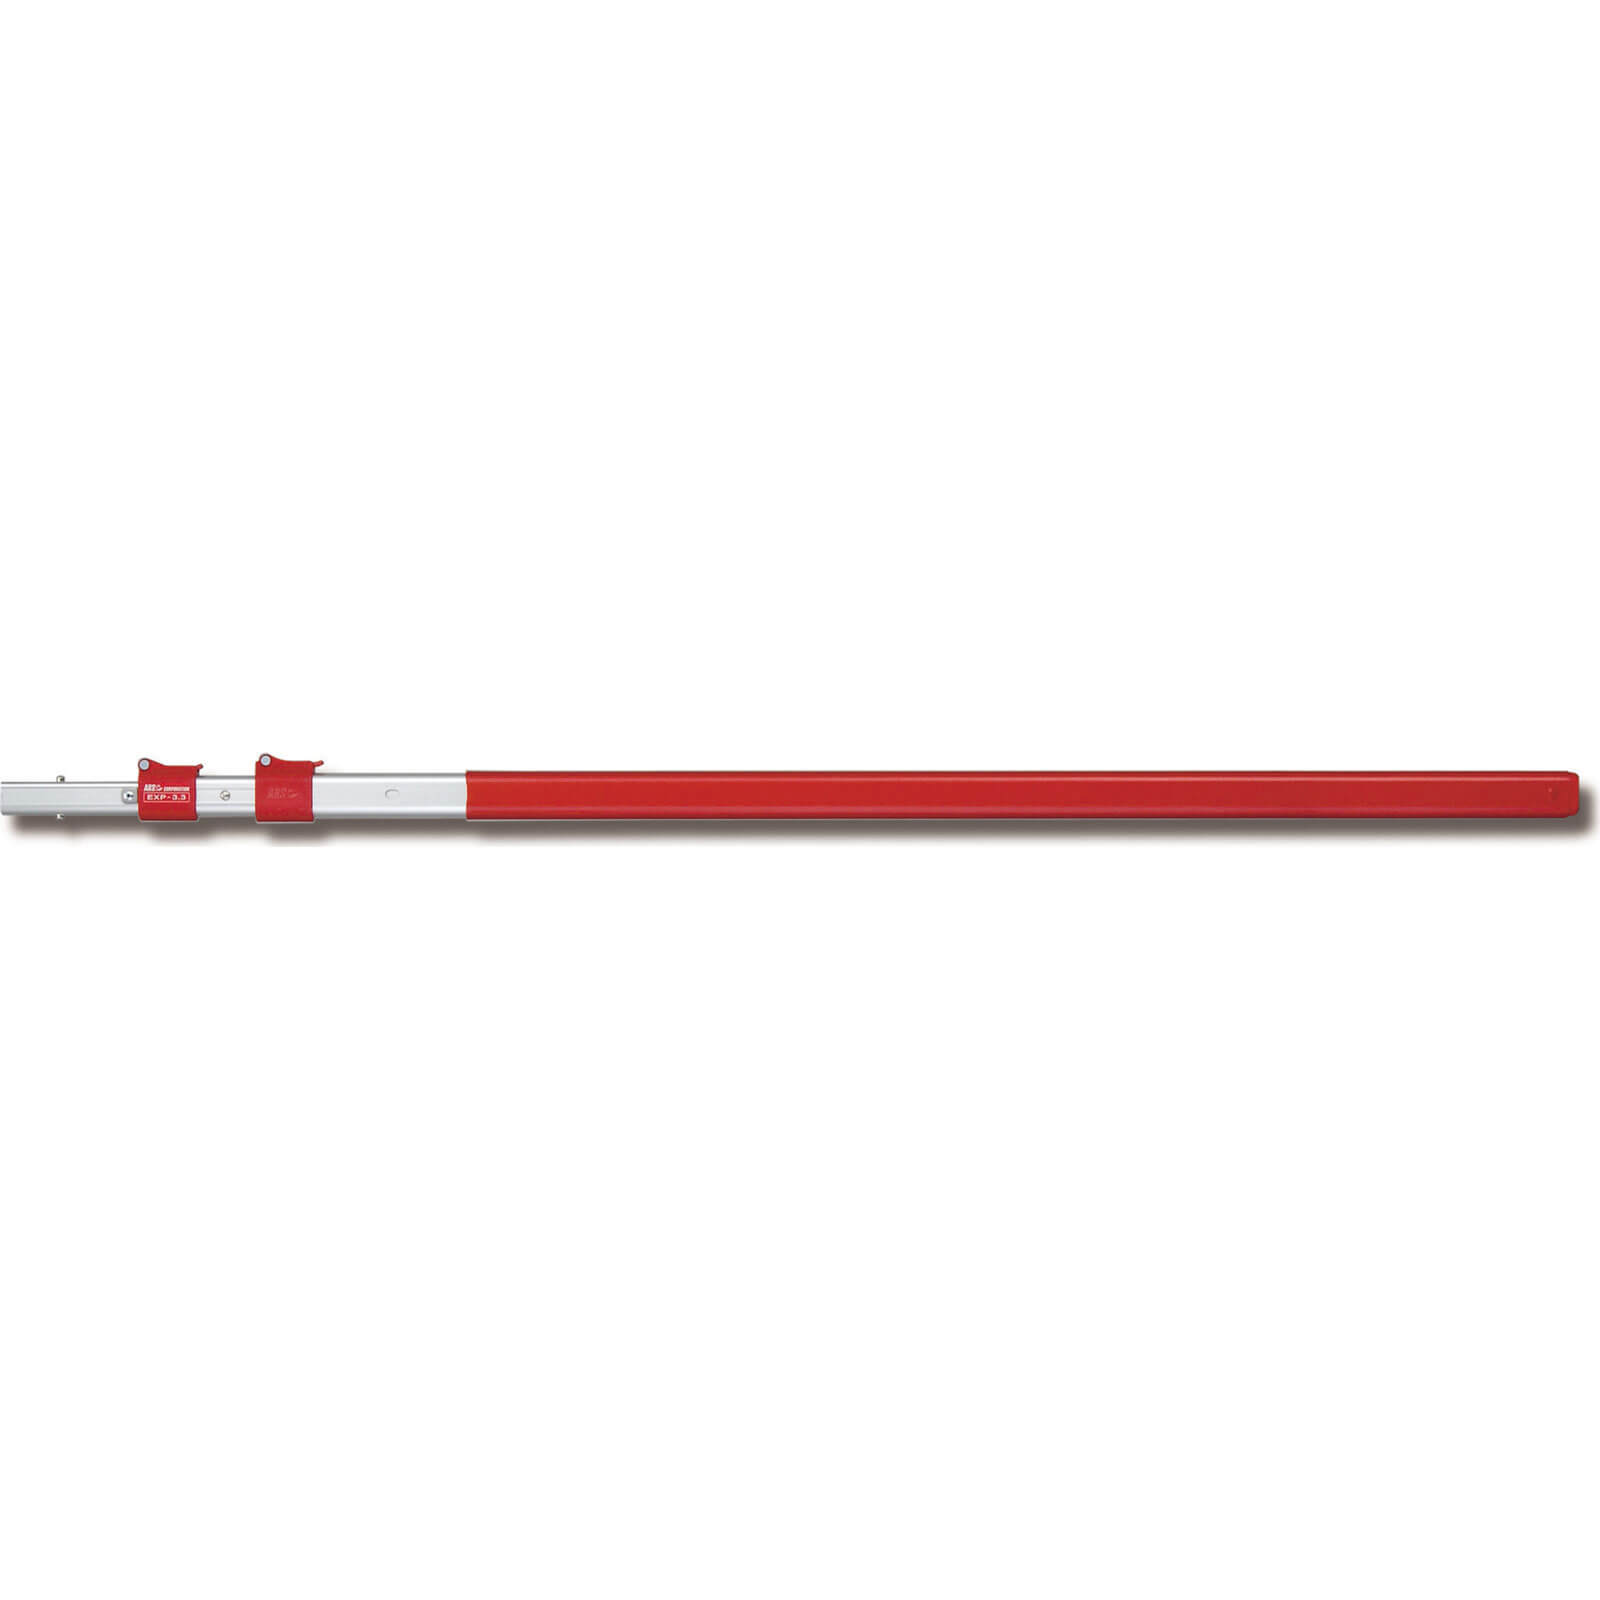 ARS EXP Telescopic Pole for Pole Saw Heads 3.2m